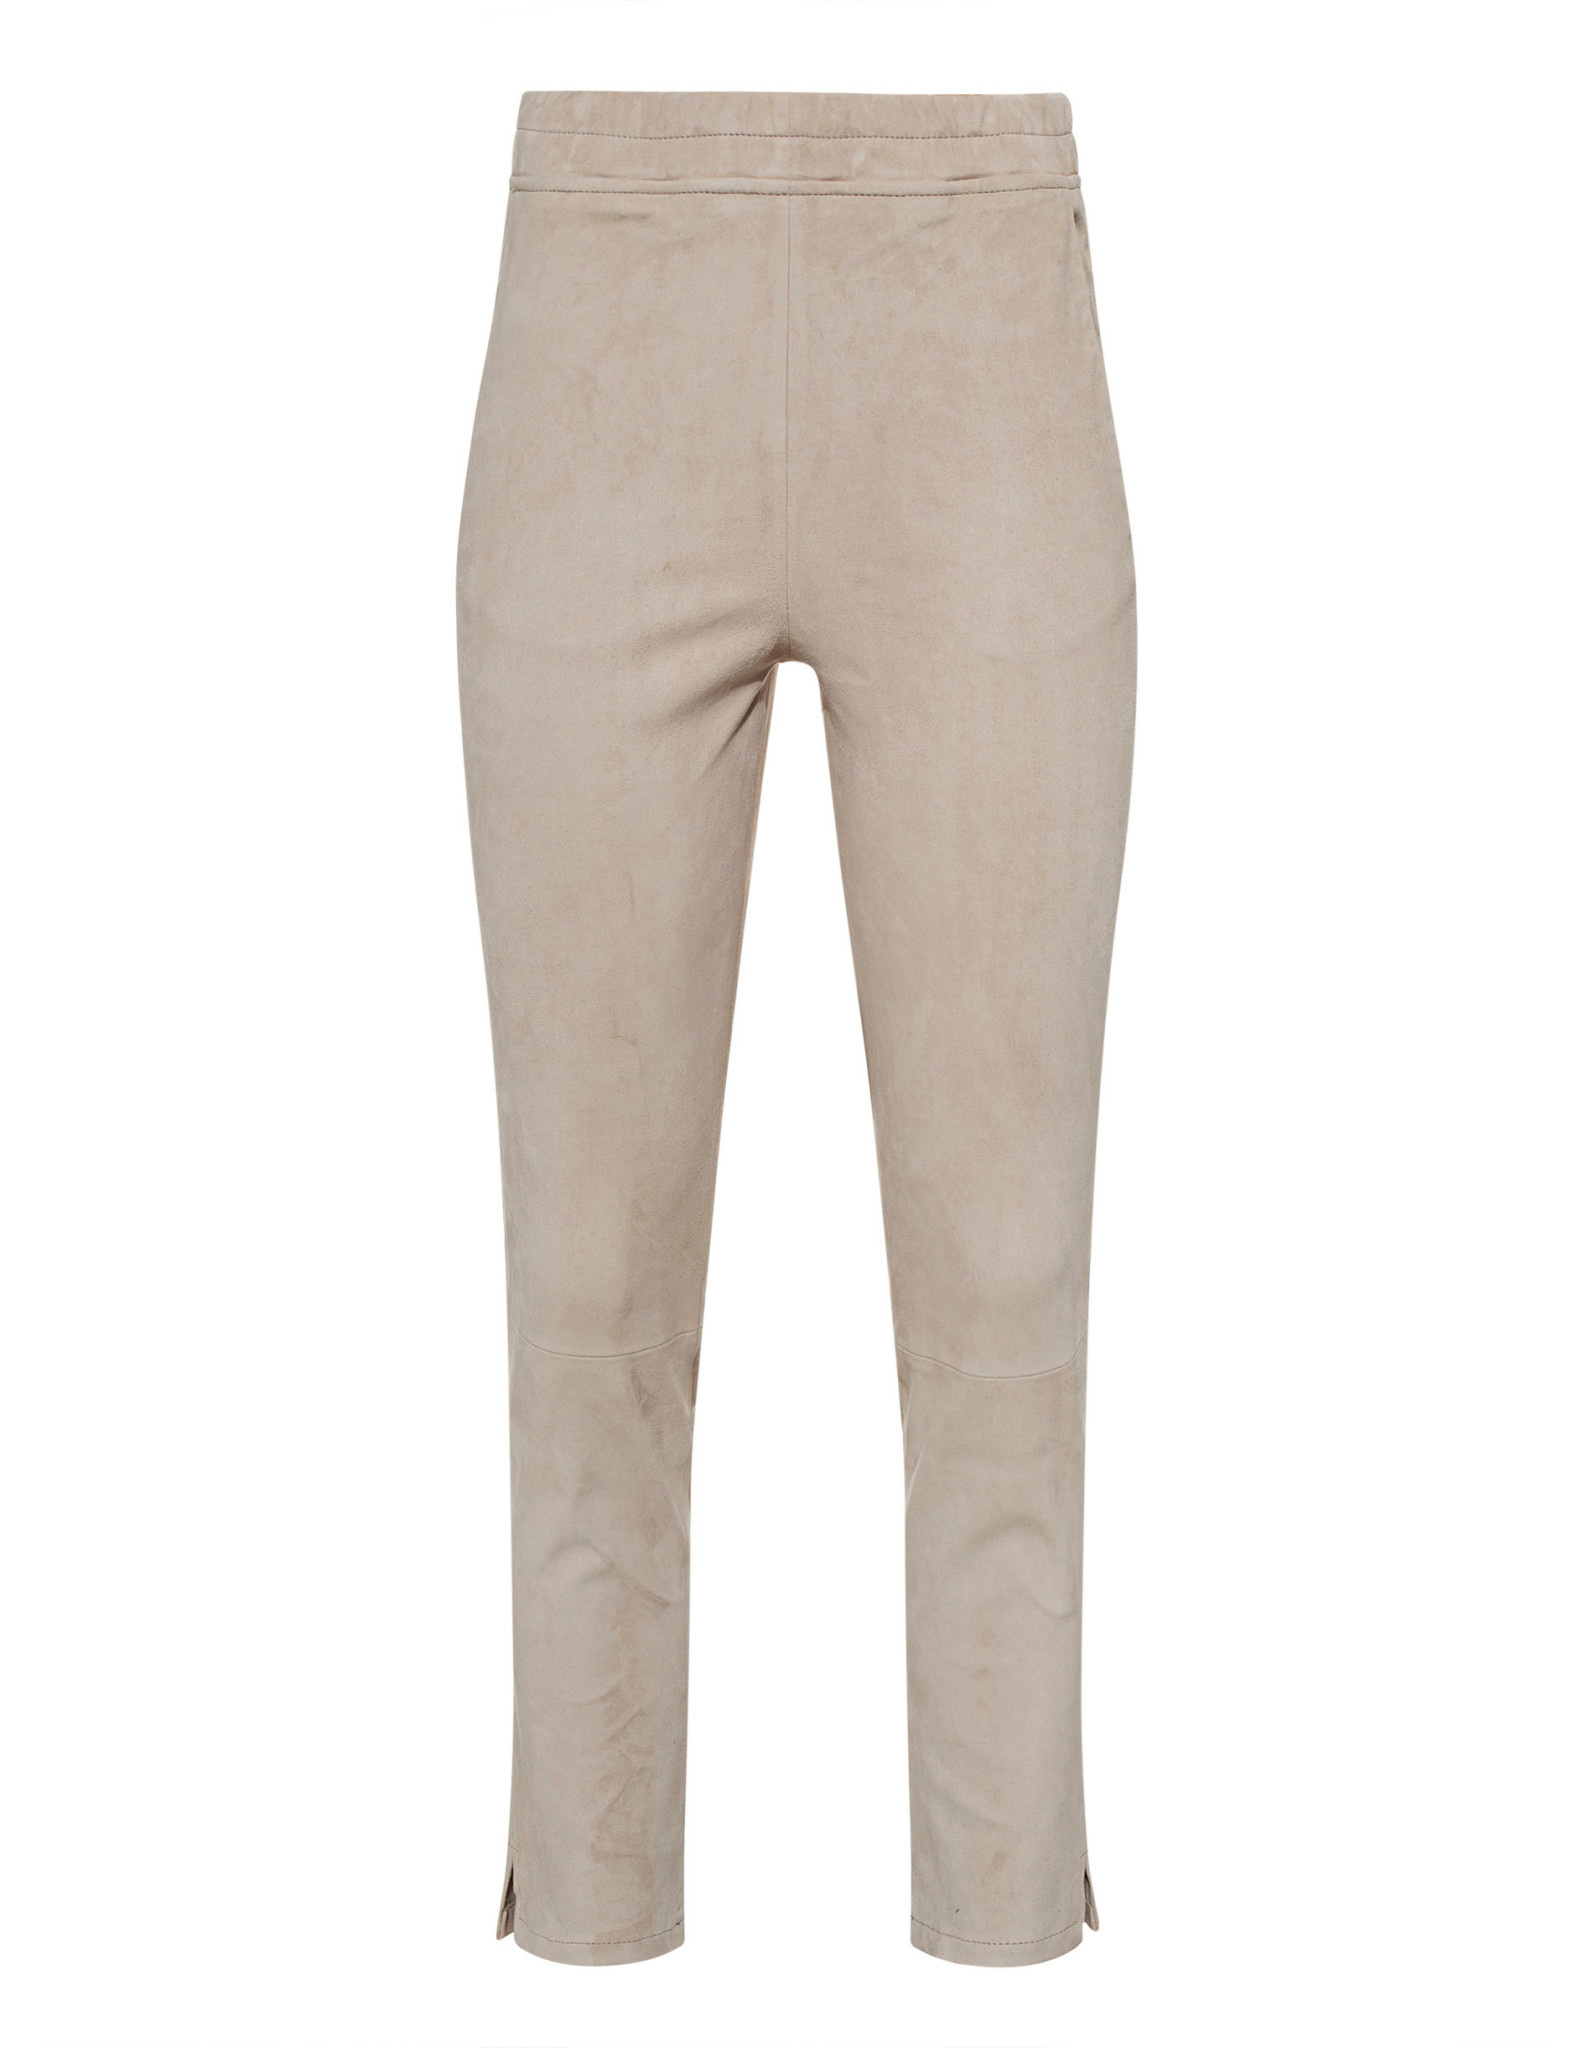 provence stretch suede pants Arma-6